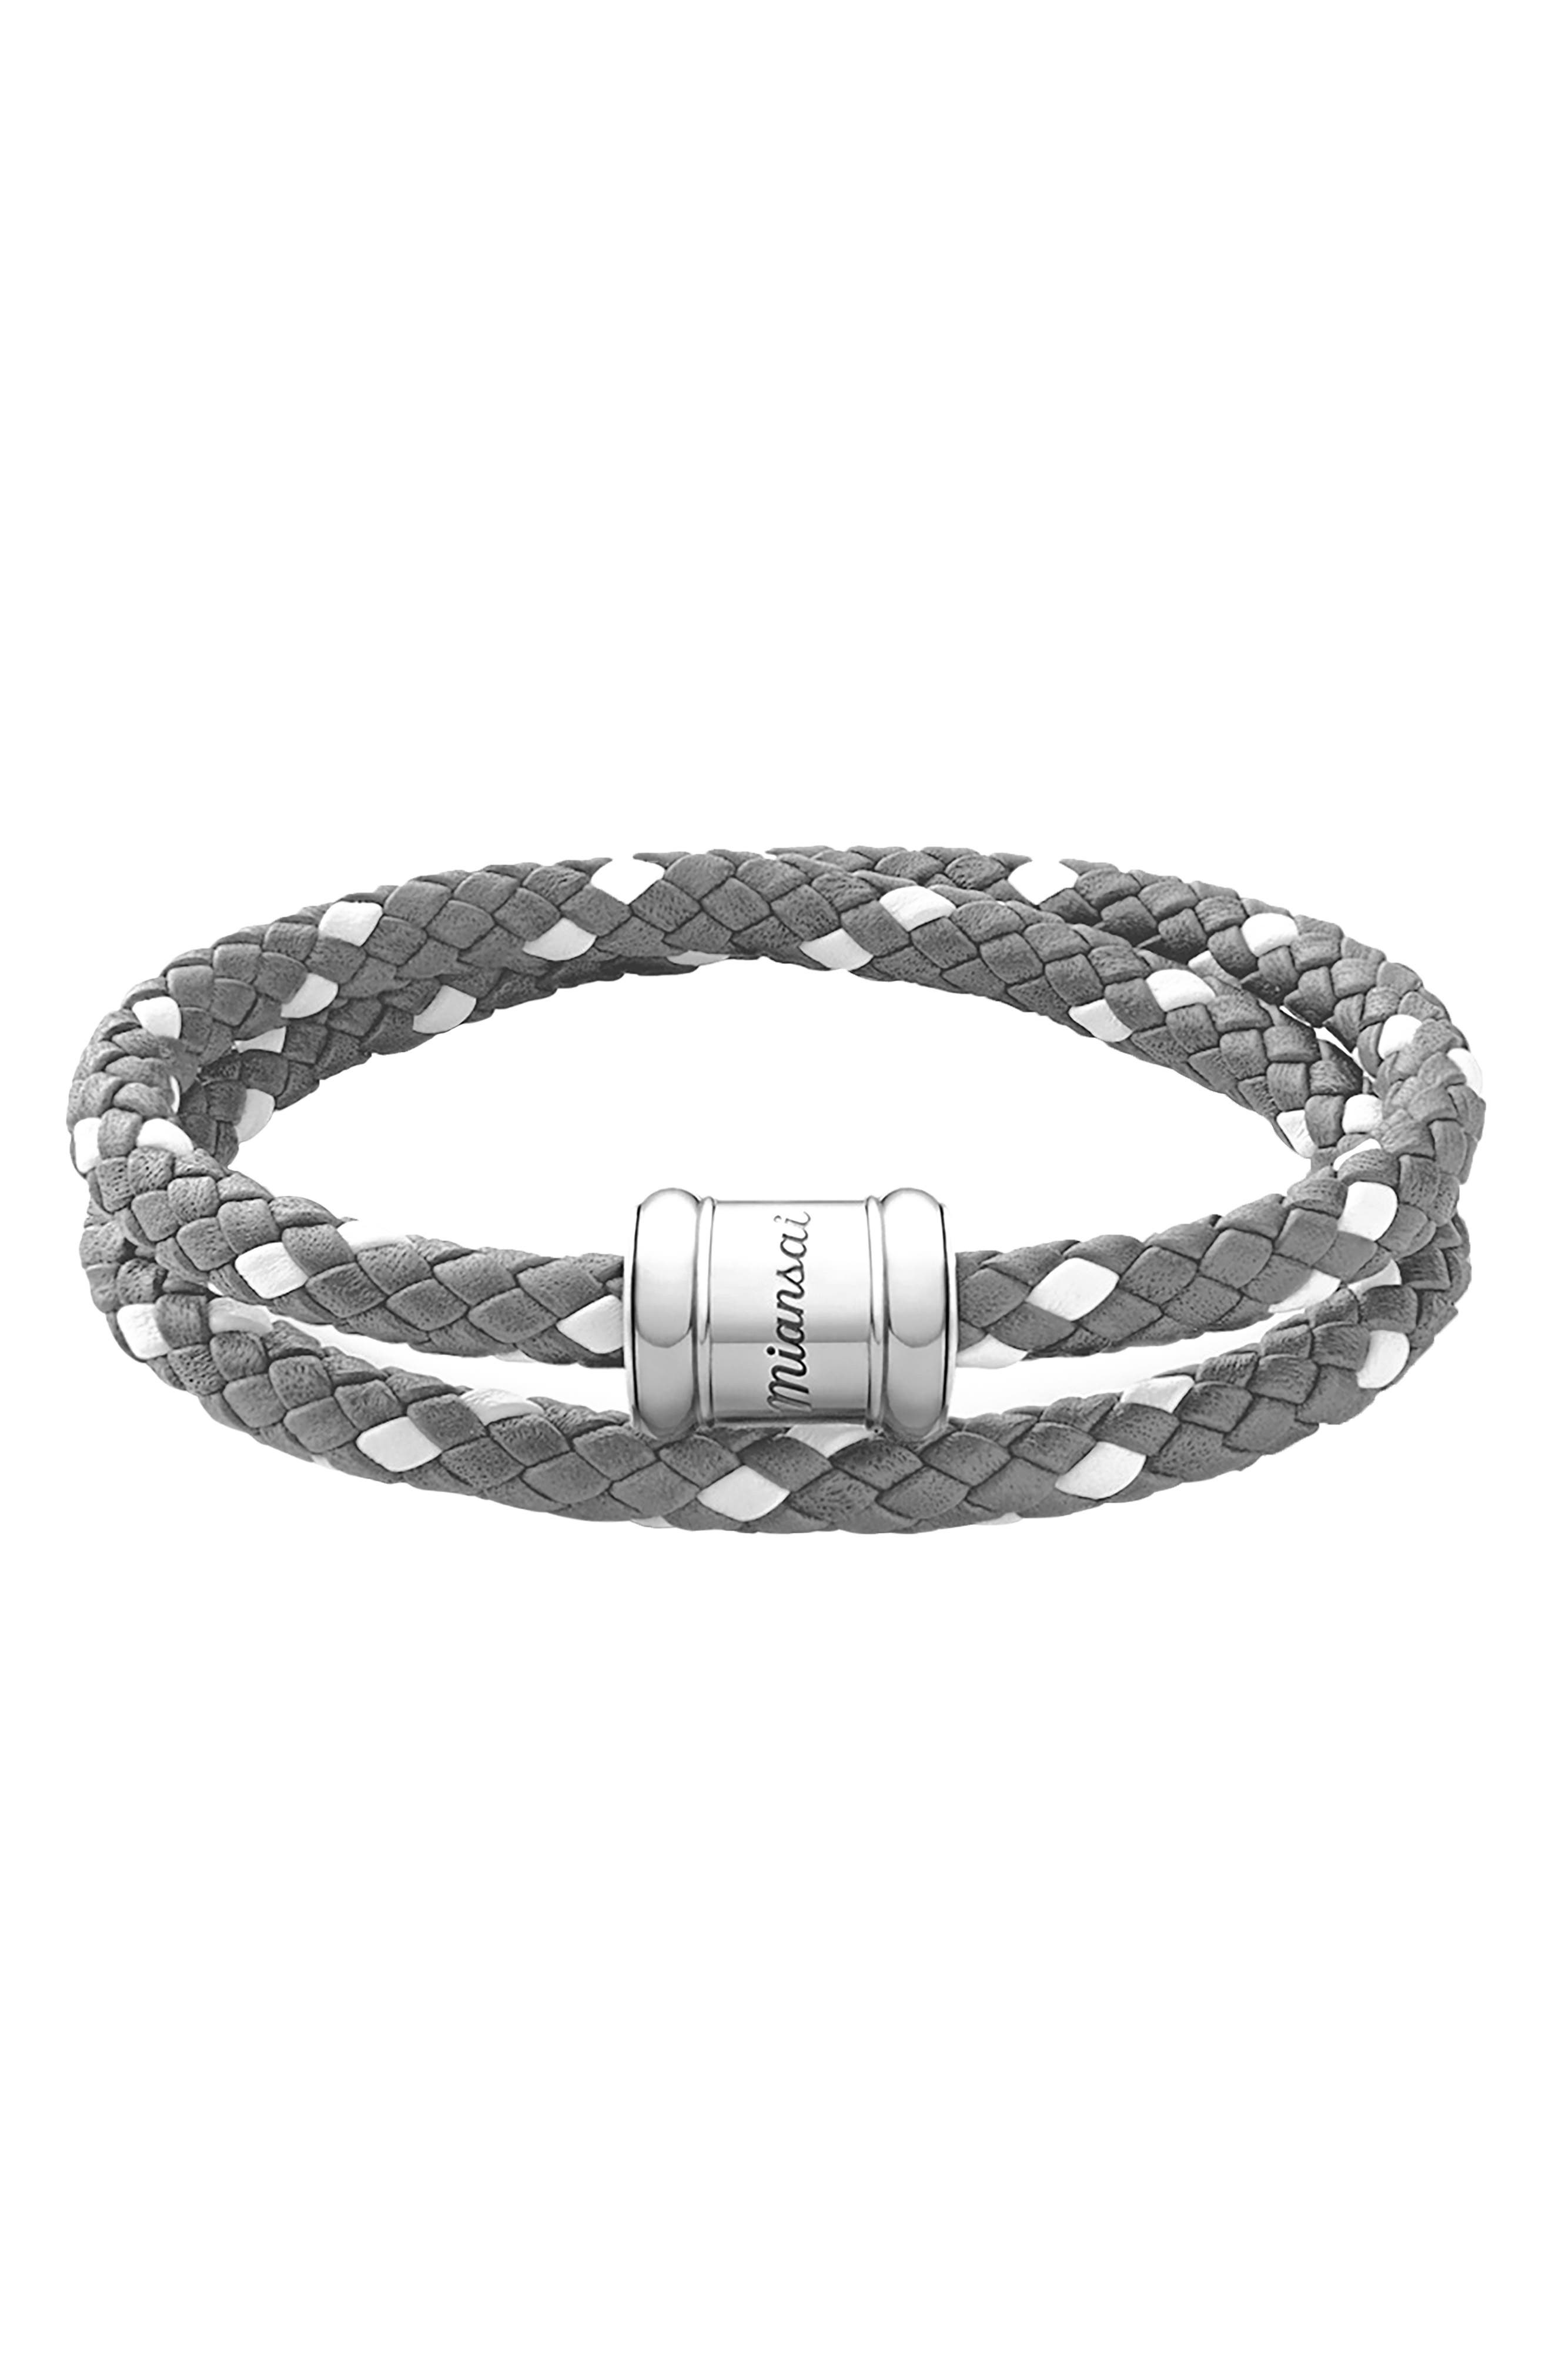 MIANSAI, Braided Leather Wrap Bracelet, Main thumbnail 1, color, GRAY/ WHITE